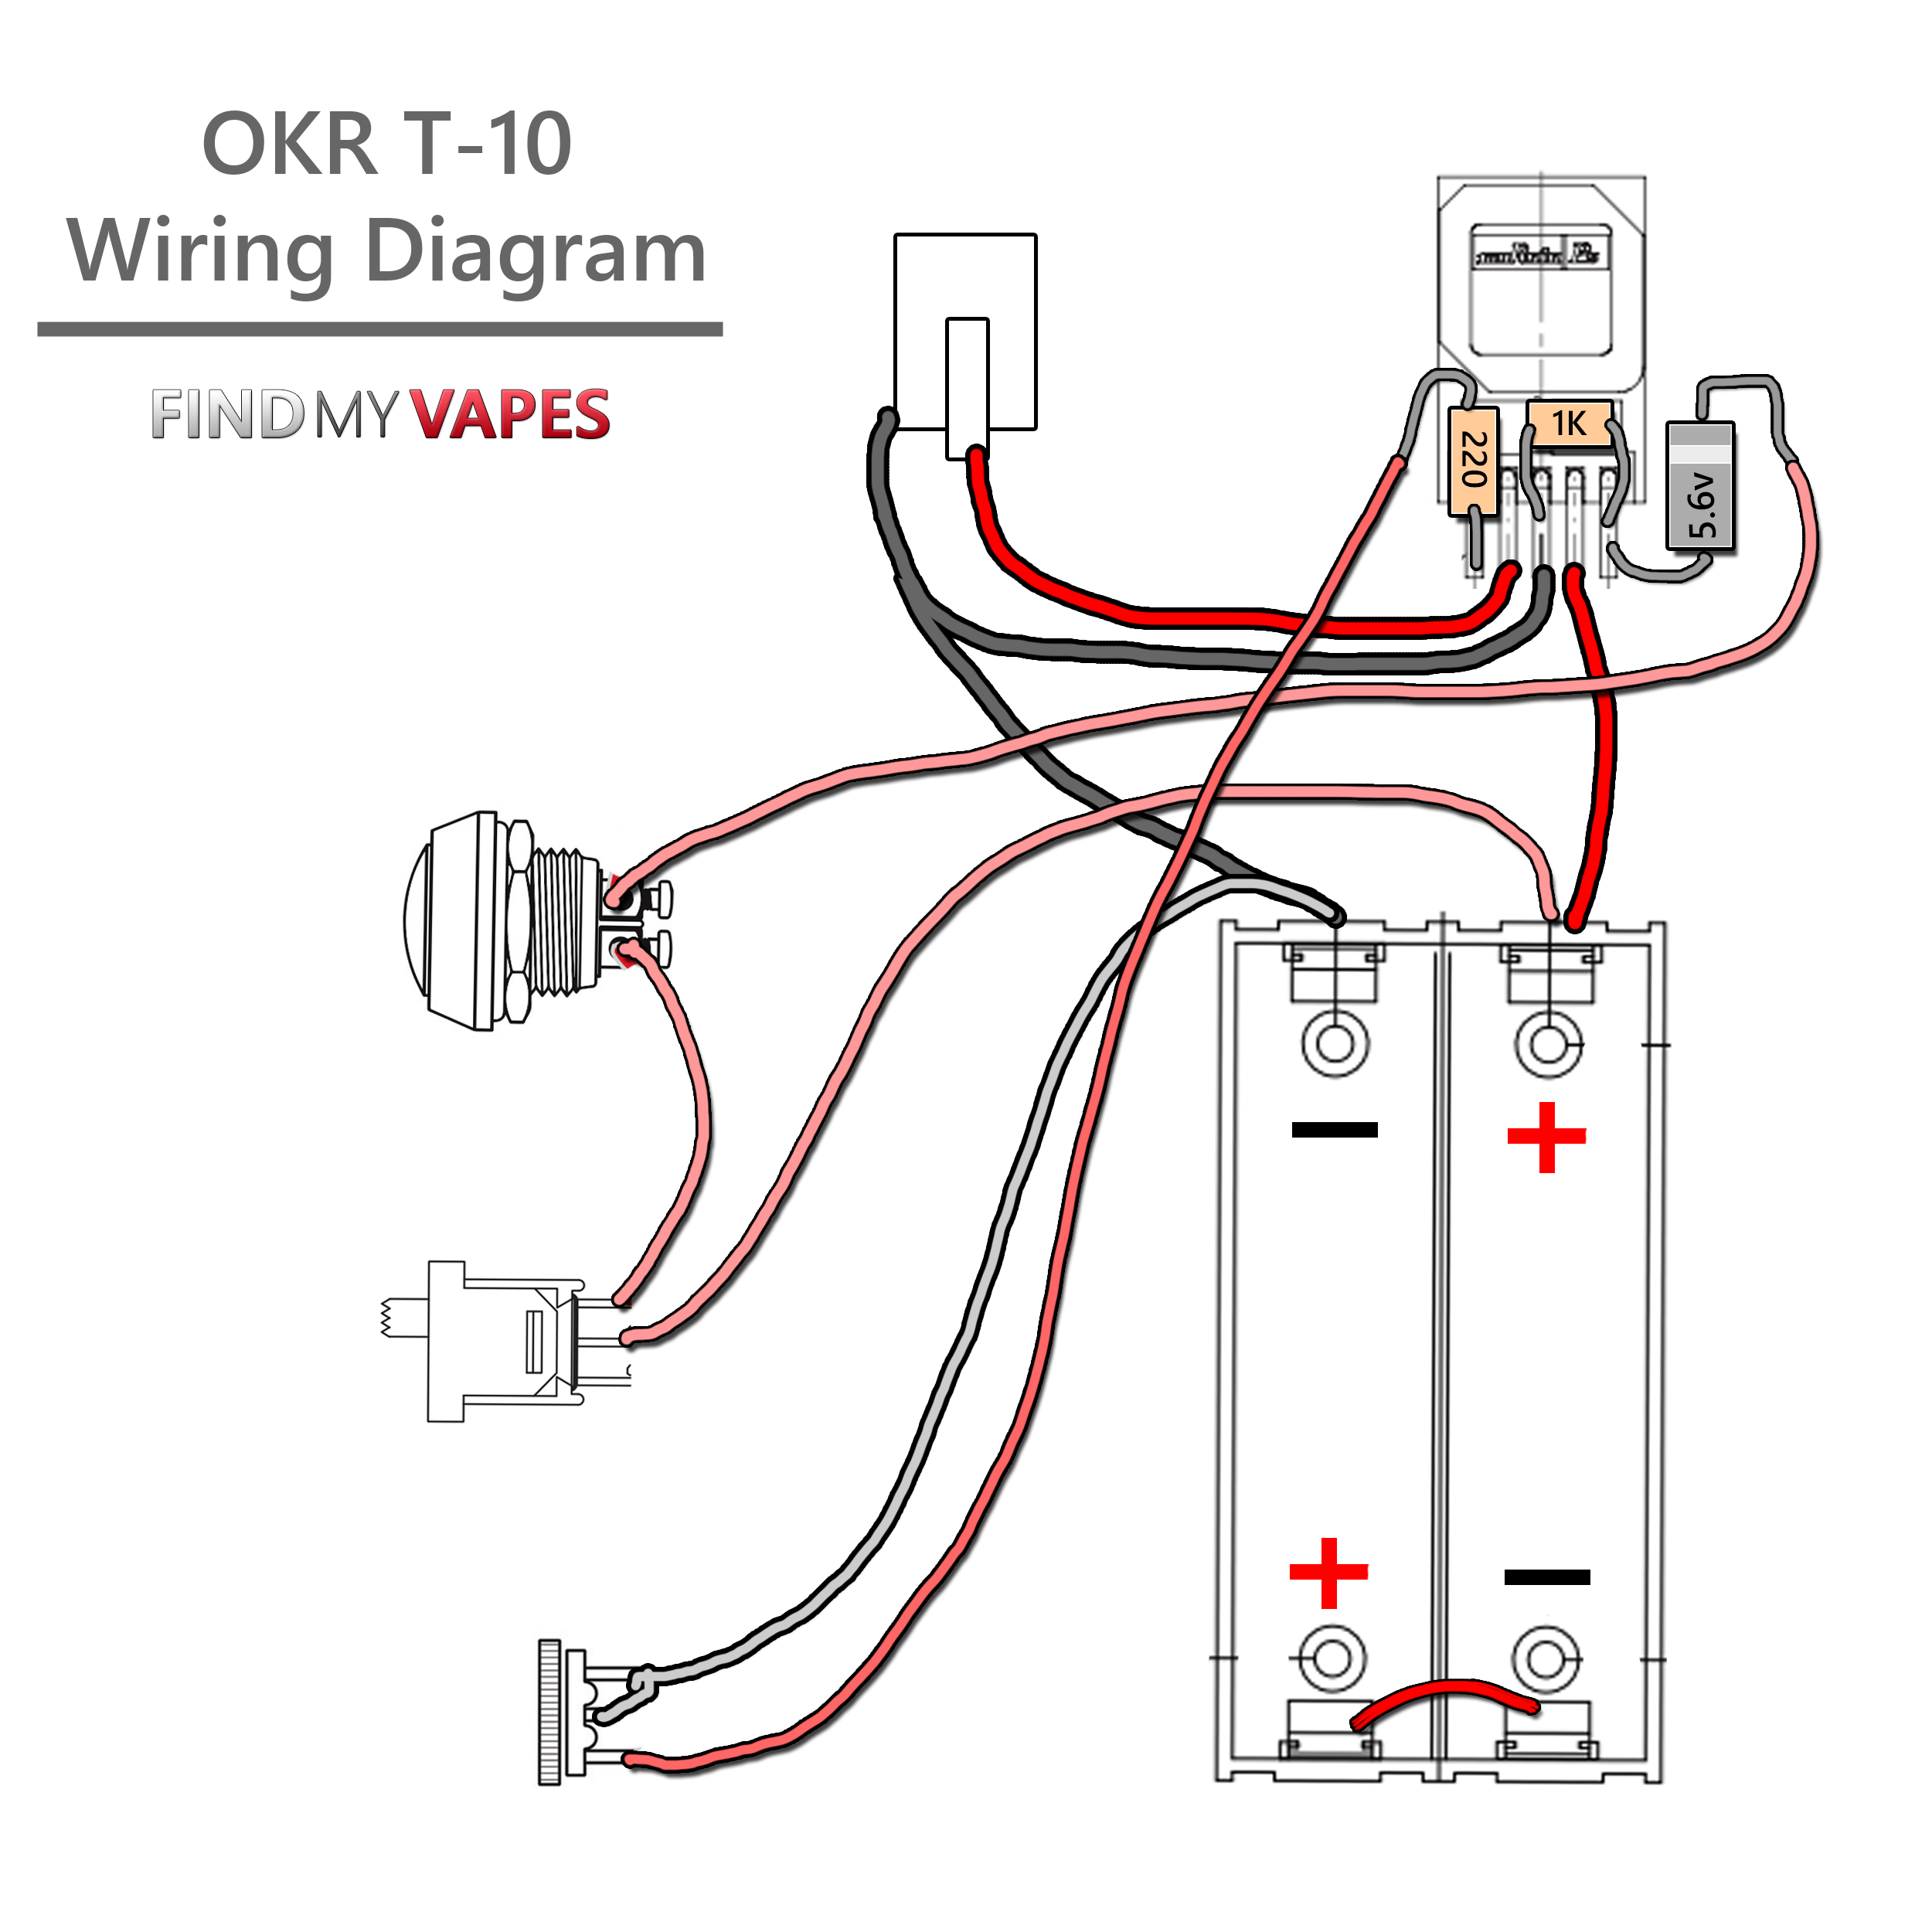 43f1f809f510551e90a2c59cd4315821 findmyvapes com how to build an okr box mod tutorial motley mods wiring diagram at gsmx.co